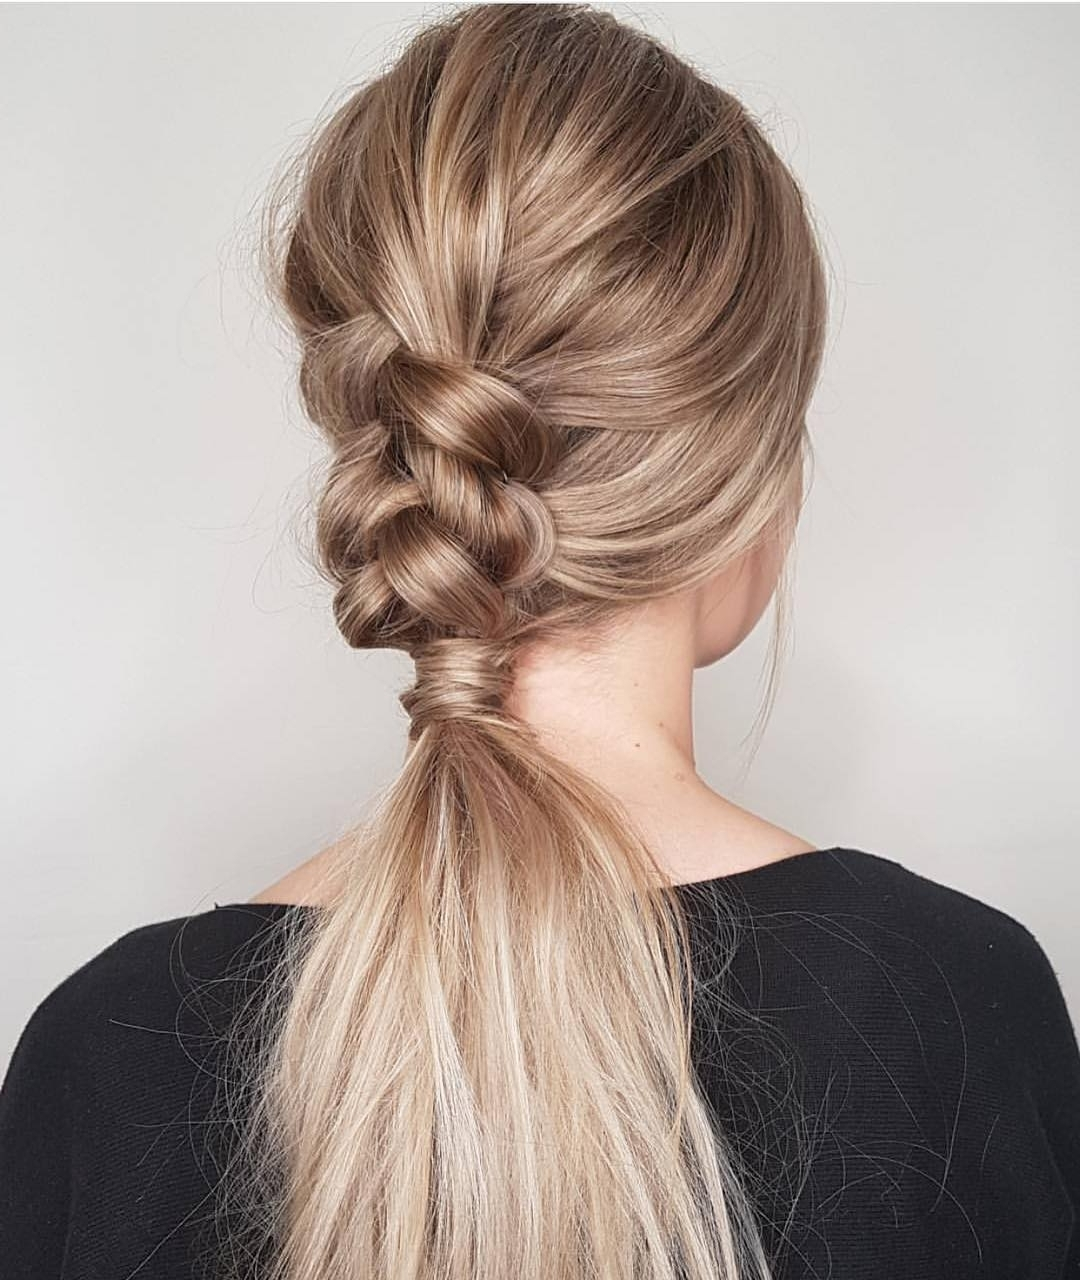 Current Brunette Prom Ponytail Hairstyles For 10 Trendiest Ponytail Hairstyles For Long Hair 2018 – Easy Ponytails (View 14 of 20)